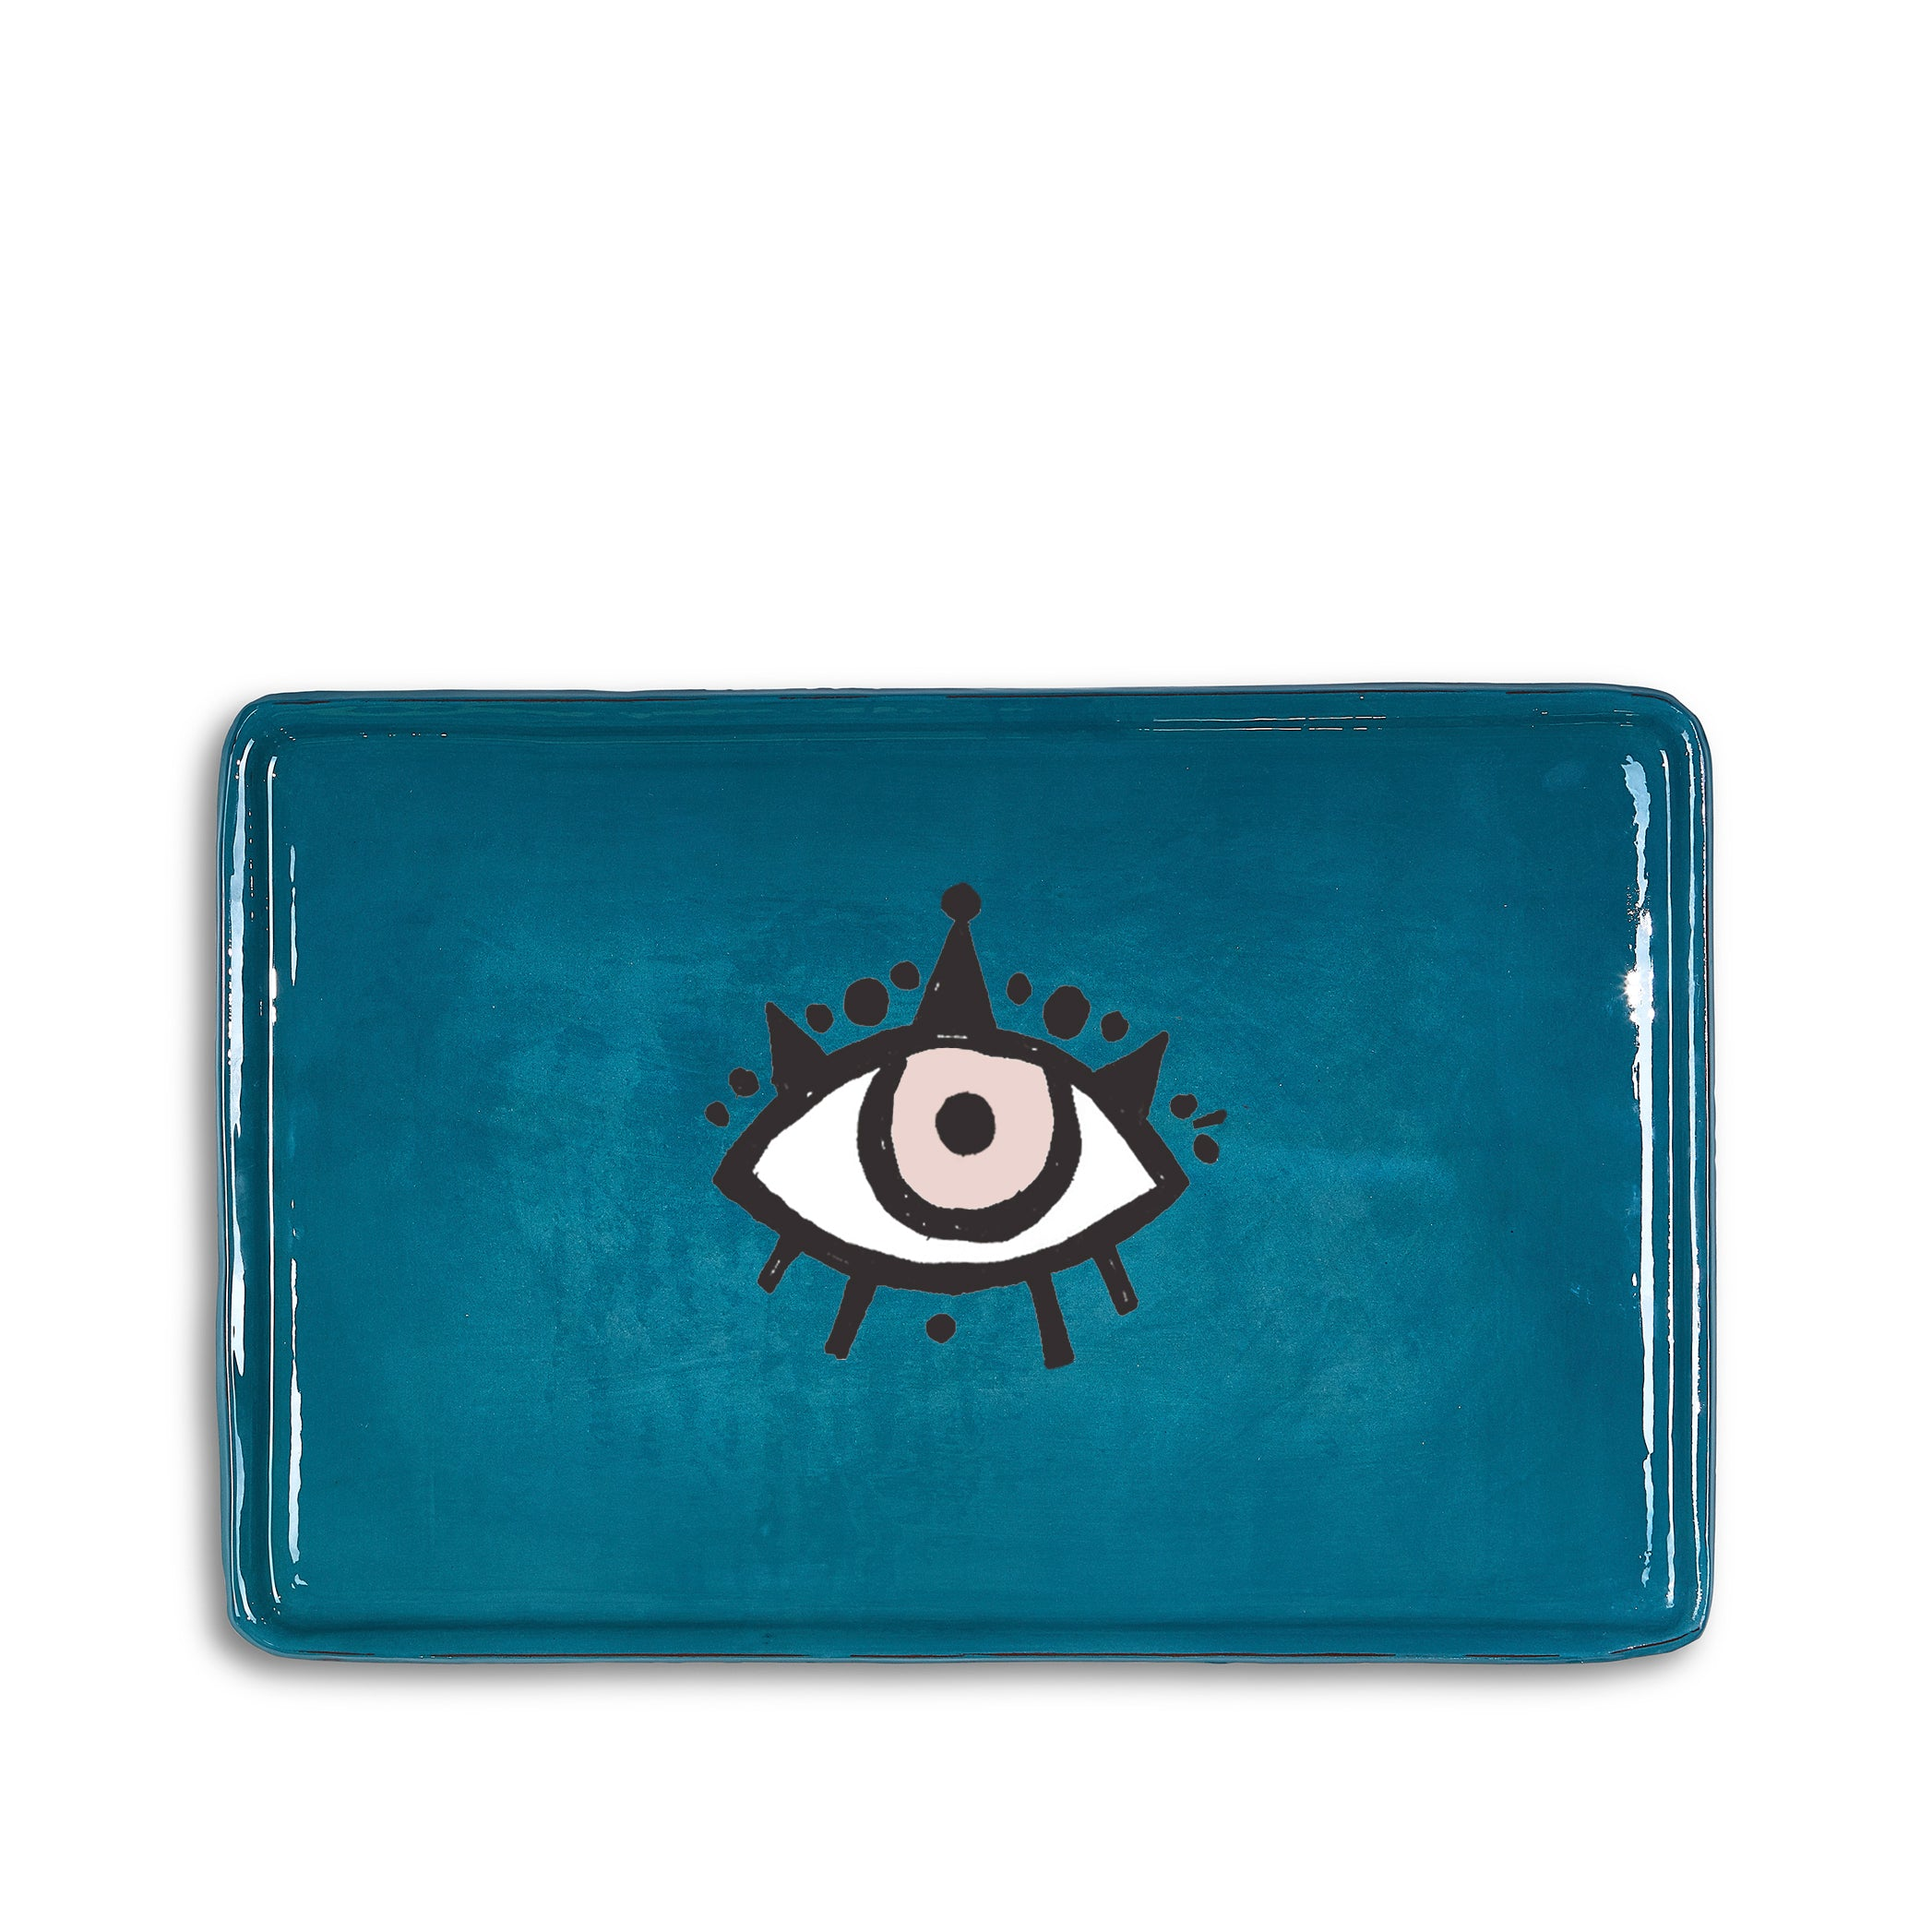 Ceramic Tray in Blue